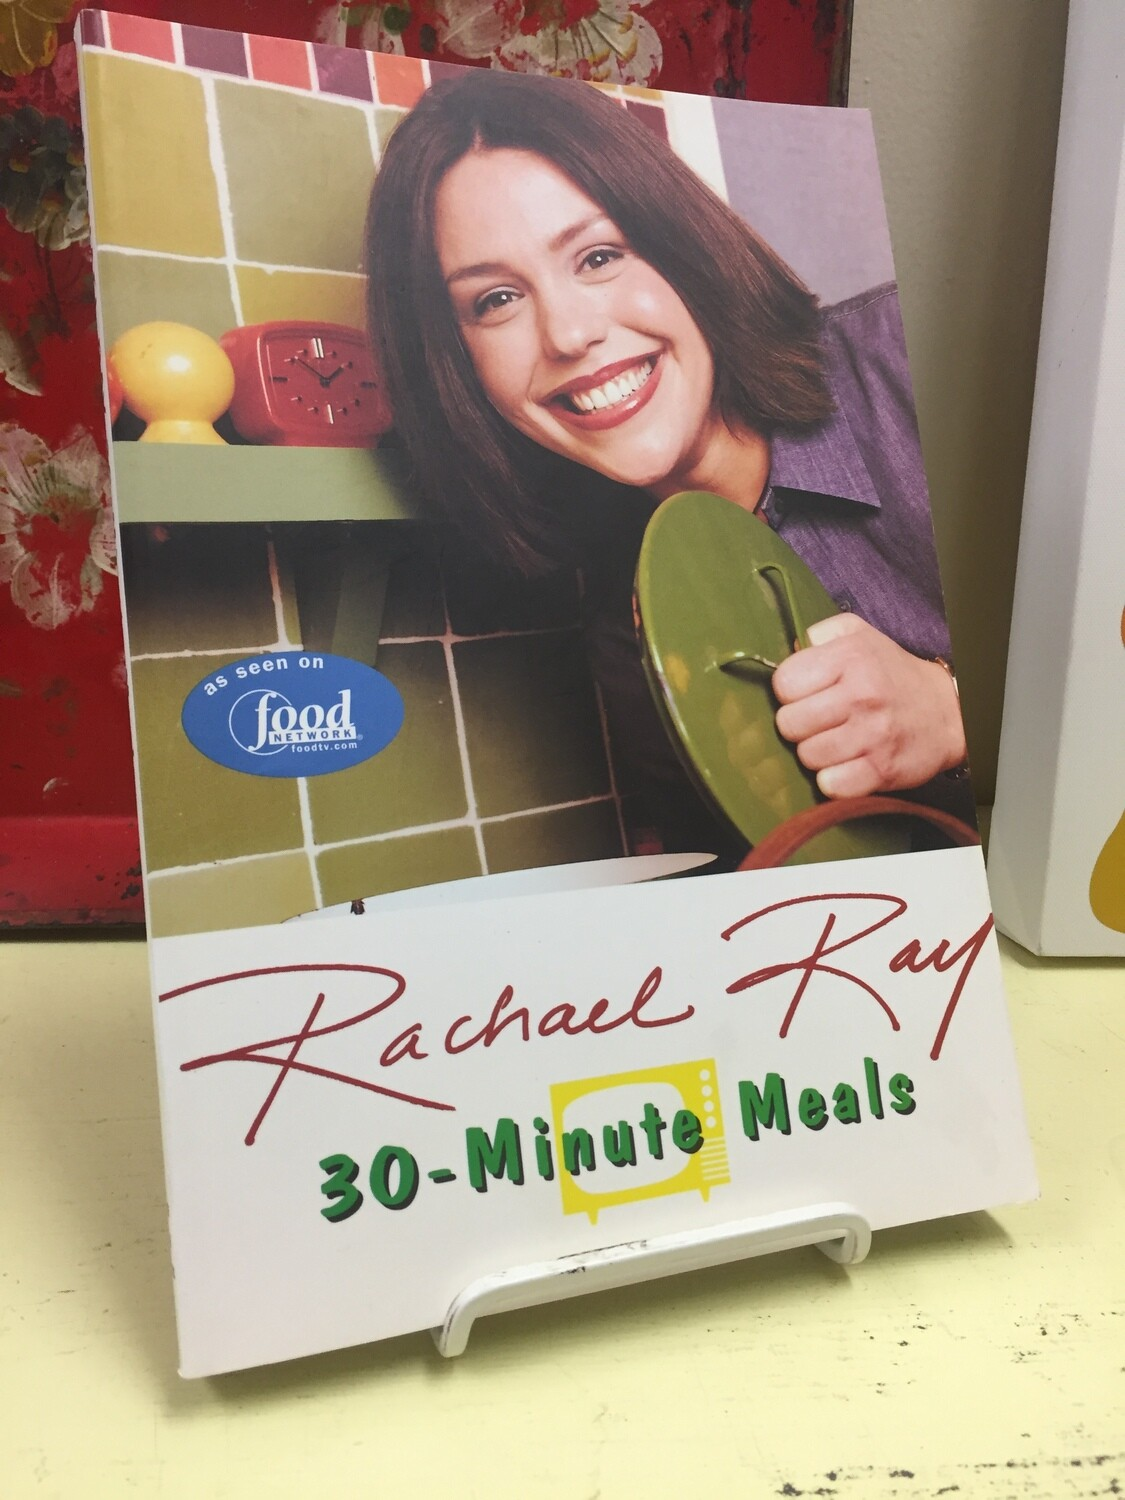 Rachael Ray: 30-Minute Meals